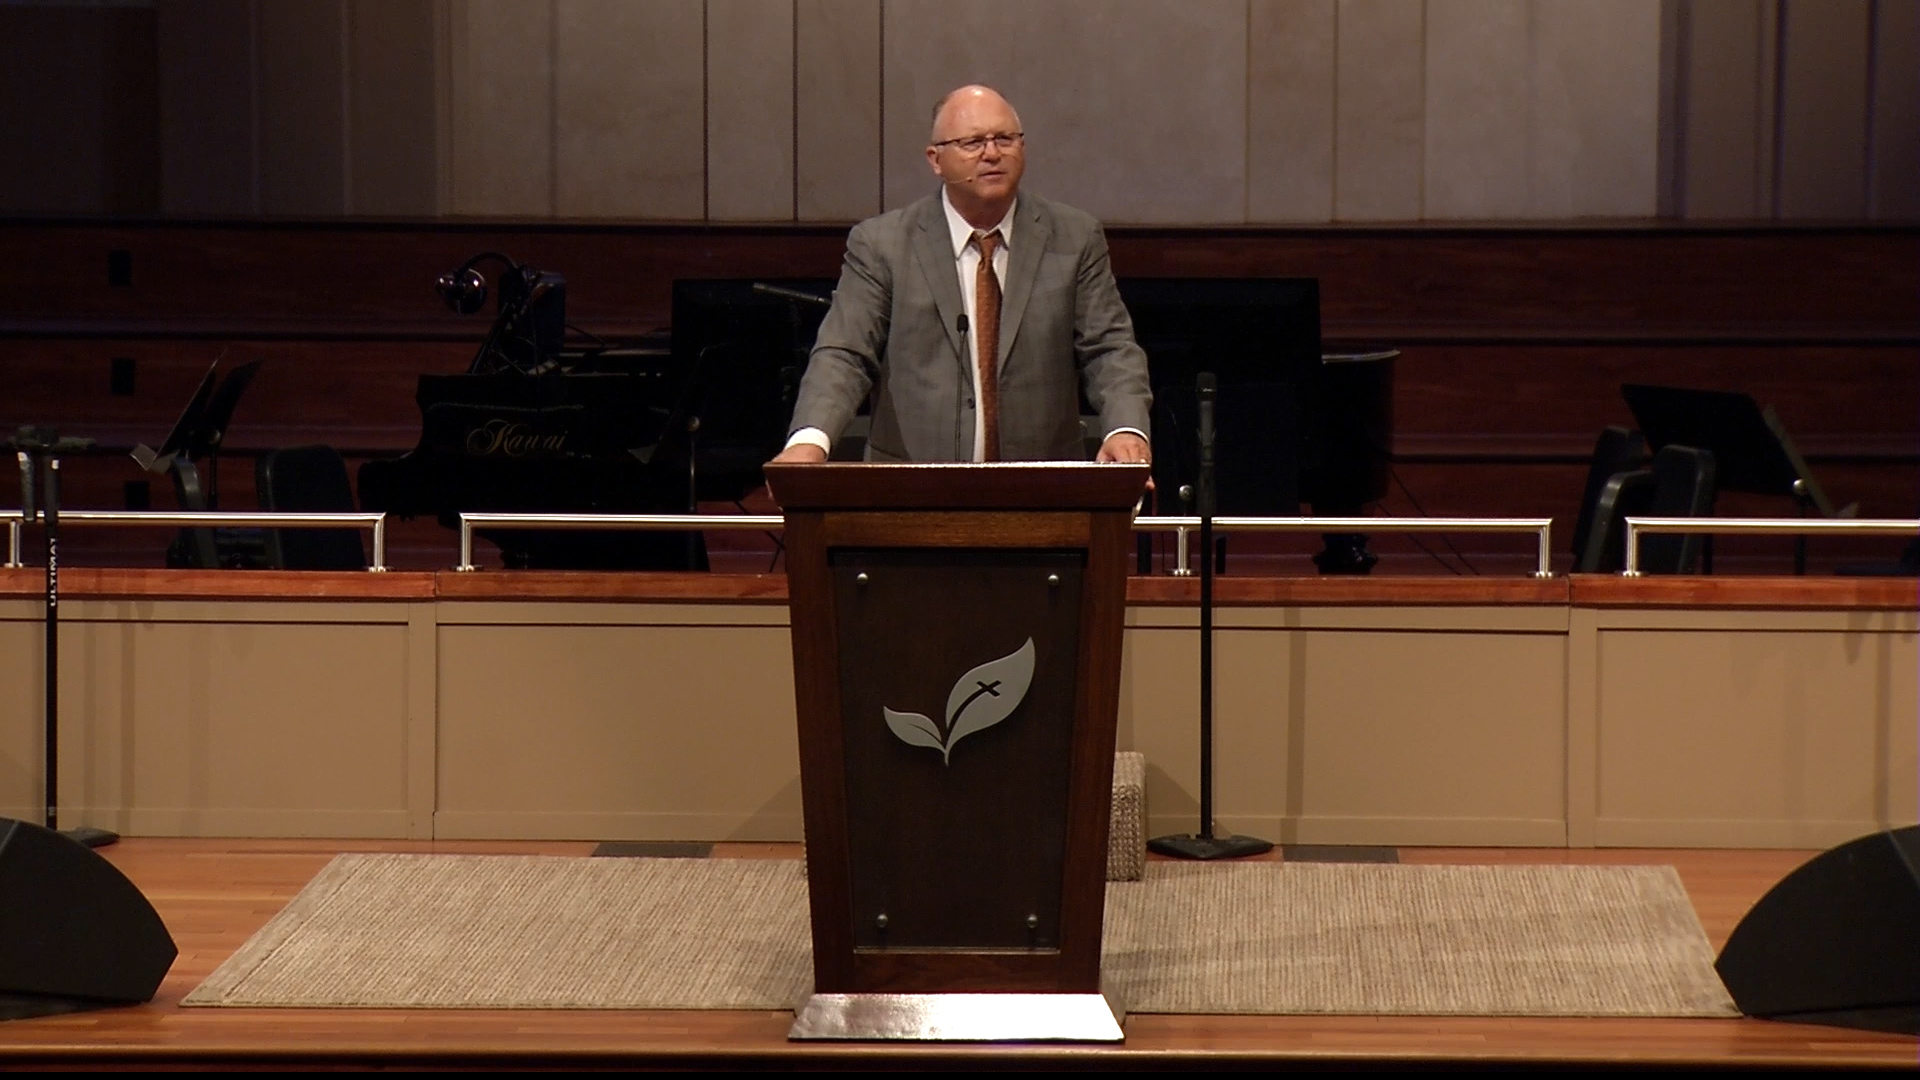 Pastor Paul Chappell: This I Believe